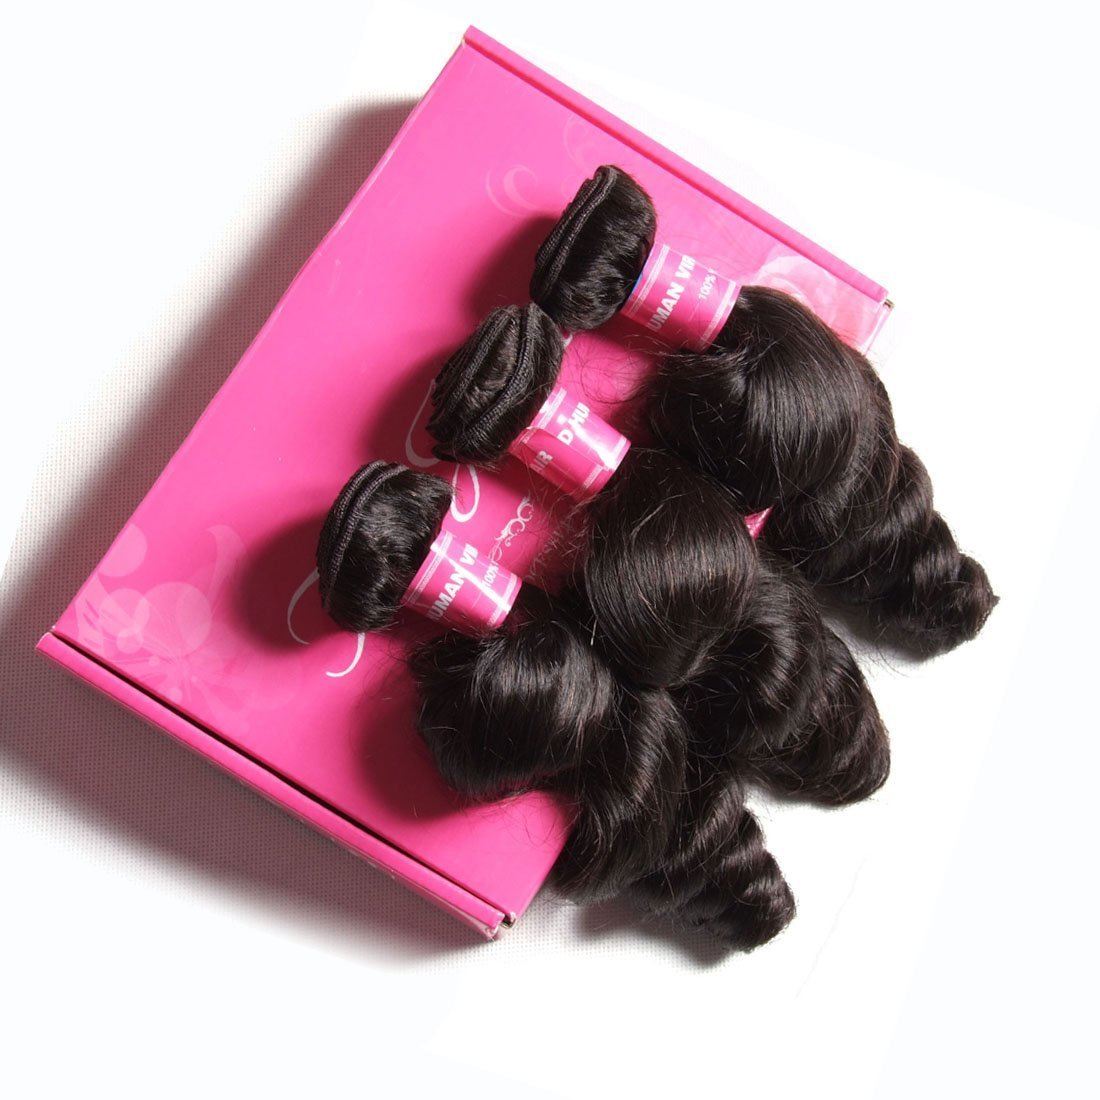 ALI JULIA 8A Brazilian Loose Wave Hair Weave 4 Bundles 100% Unprocessed Virgin Human Hair Weft Extensions 95-100g/pc Natural Color (4PC20 22 24 26) by Yilian (Image #7)